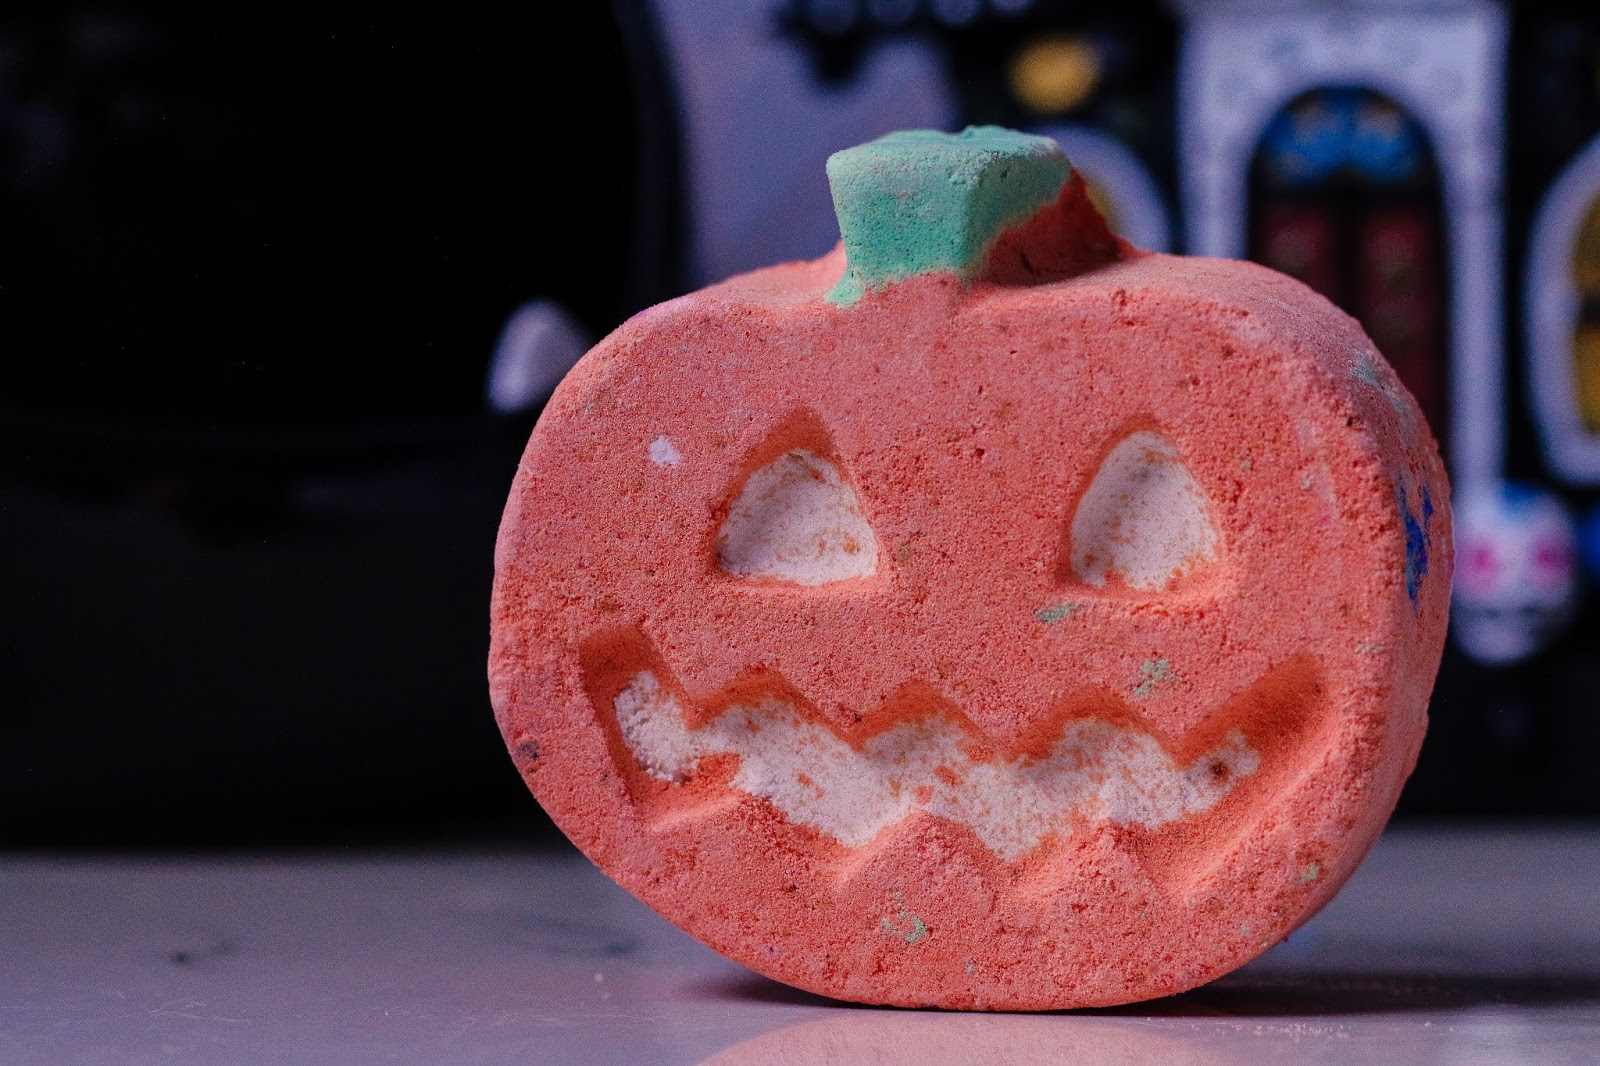 extreme close up photo of the Pumpkin Pumpkin Bath bomb from lush. An orange bath bomb that is shaped like a pumpkin with glow in the dark eyes, a green stem at the top and a white pumpkin mouth. Bath bomb sitting on white marble bed side table with a Haunted house Halloween decoration in the background.